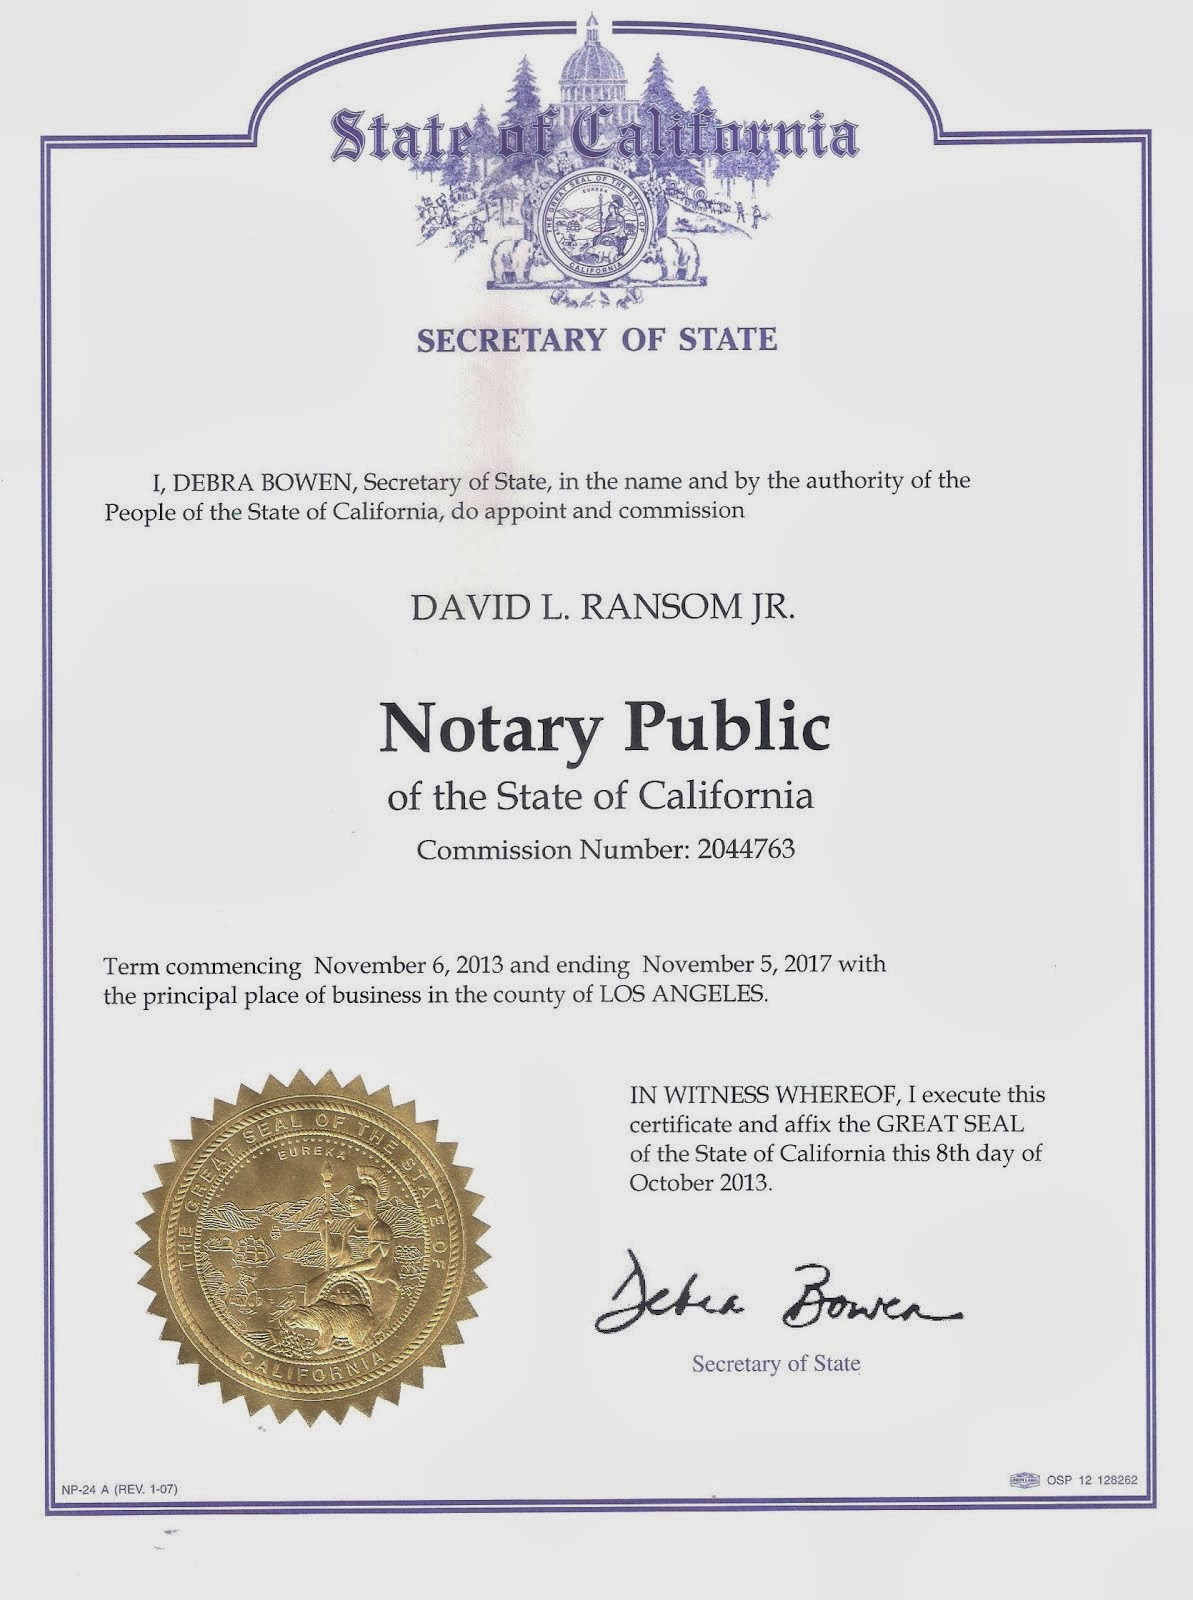 Notary Commission Certificate of David L. Ransom Jr., Notary Public